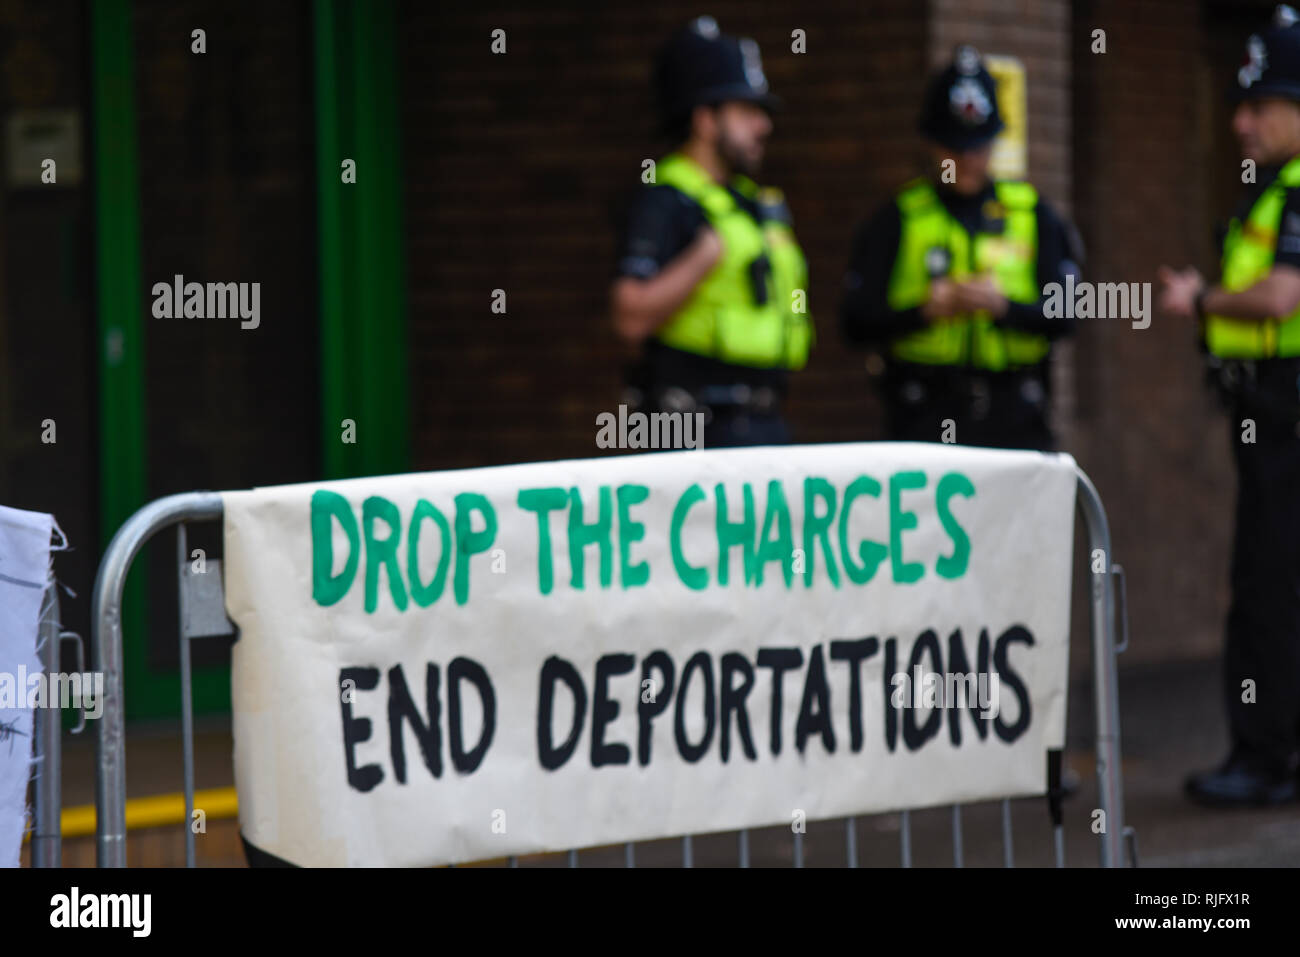 Sentencing of 15 protesters who blocked a deportation flight and disrupted operations at Stansted Airport on 28 March 2017 is taking place at Chelmsford Crown Court. Protesters gathered outside the court demonstrating against their convictions - Stock Image